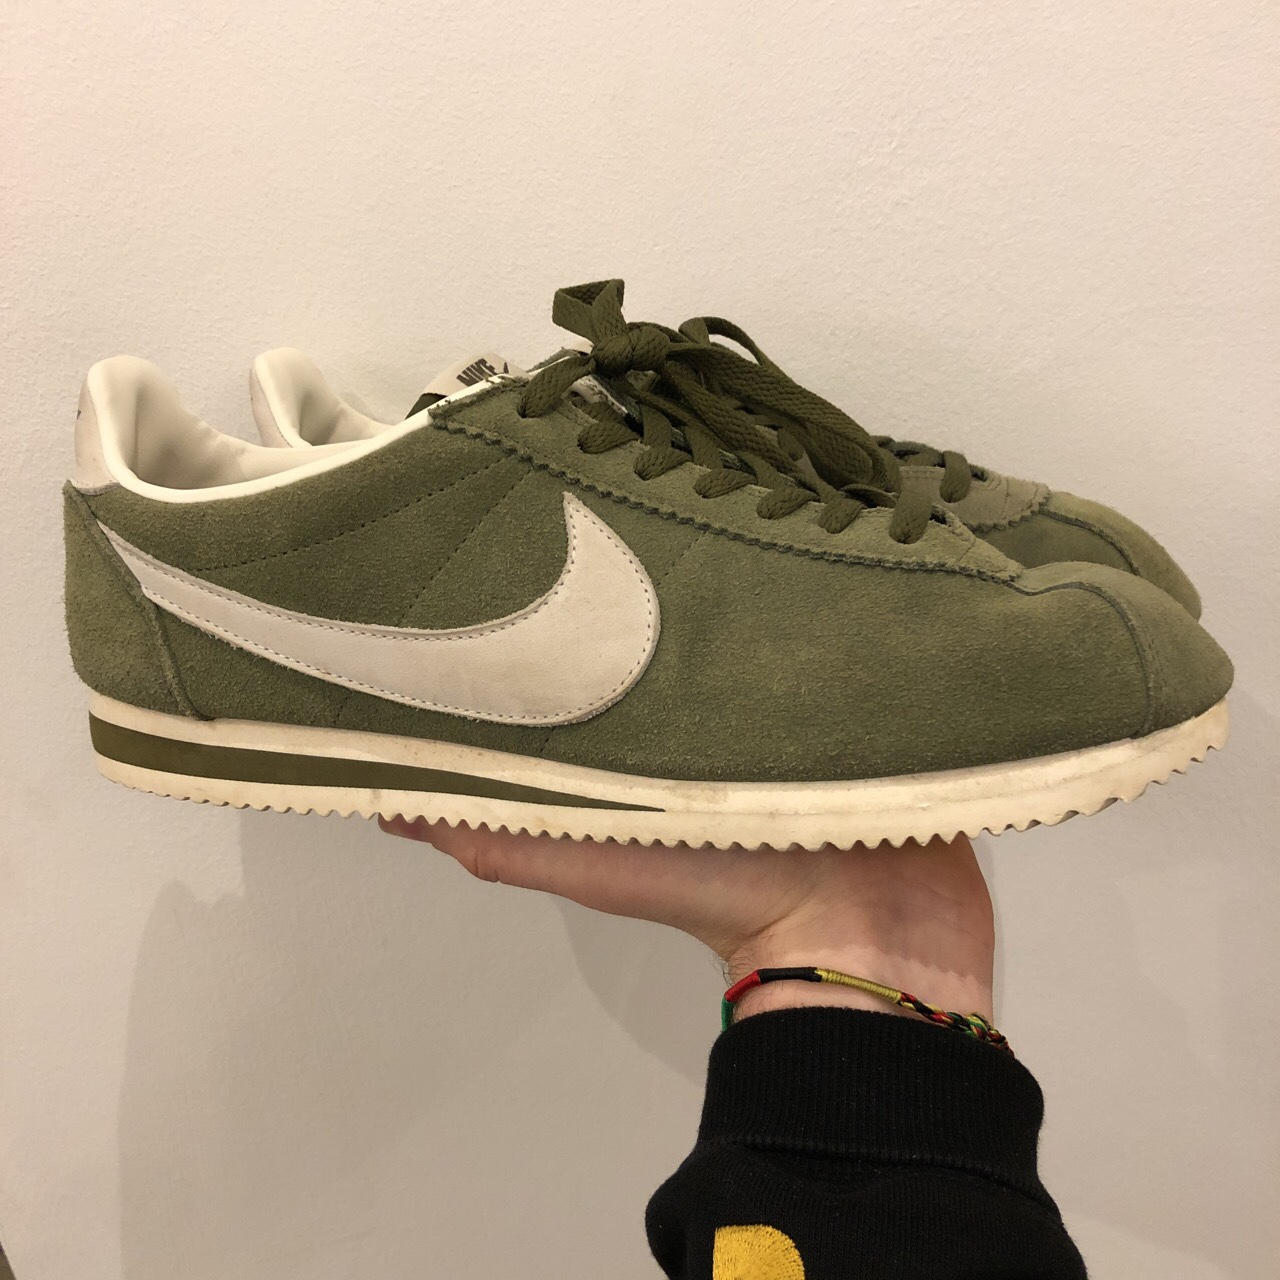 size 40 e6195 482b4 Olive green Nike Cortez, selling because too big.... - Depop